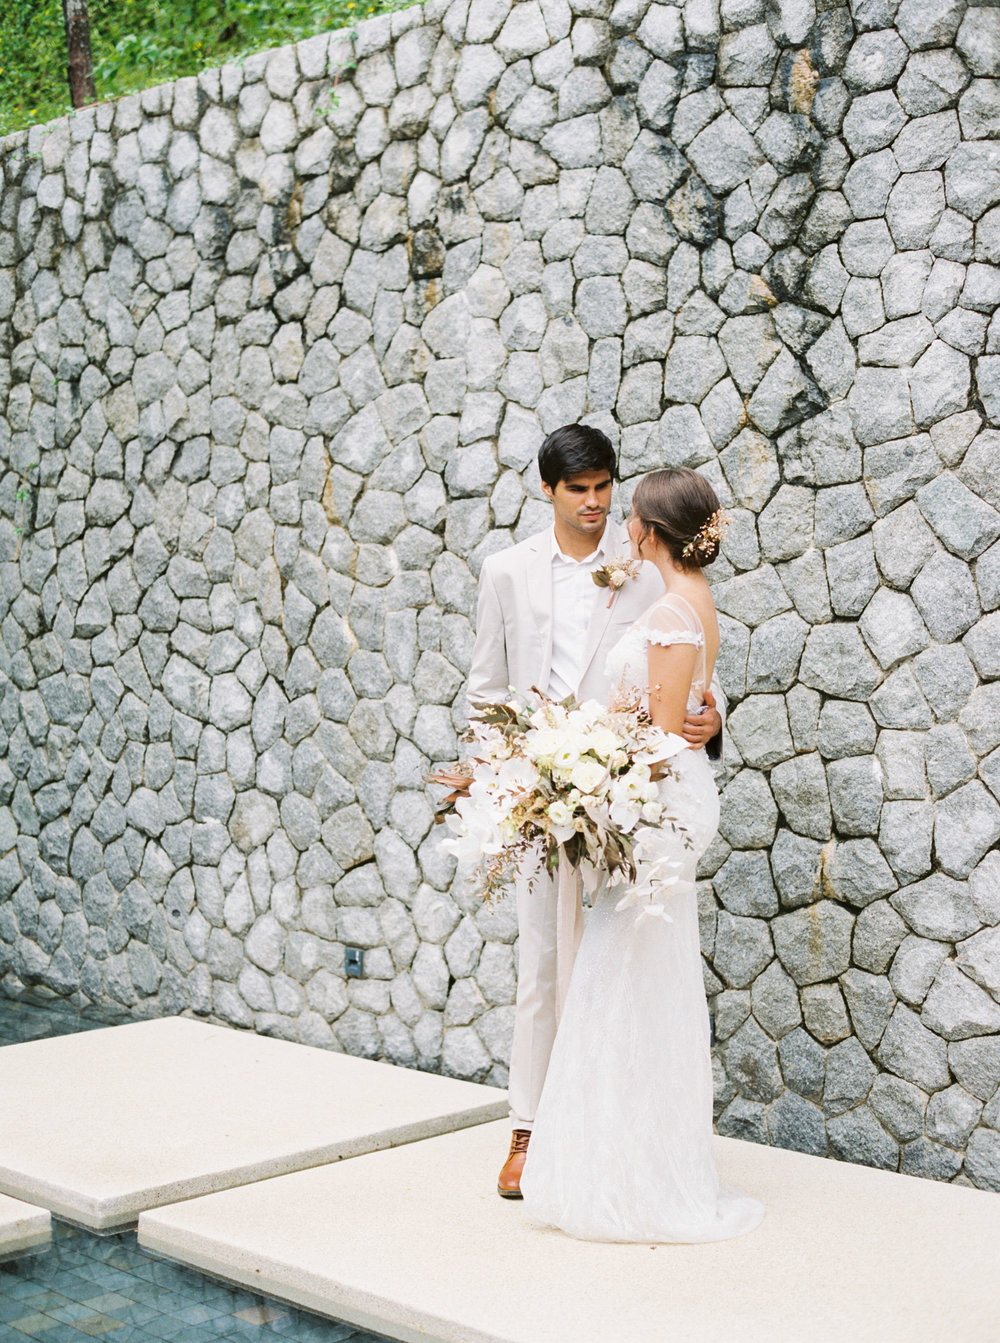 Destination Wedding Phuket Thailand Fine Art Film Photographer Sheri McMahon-00028-28.jpg